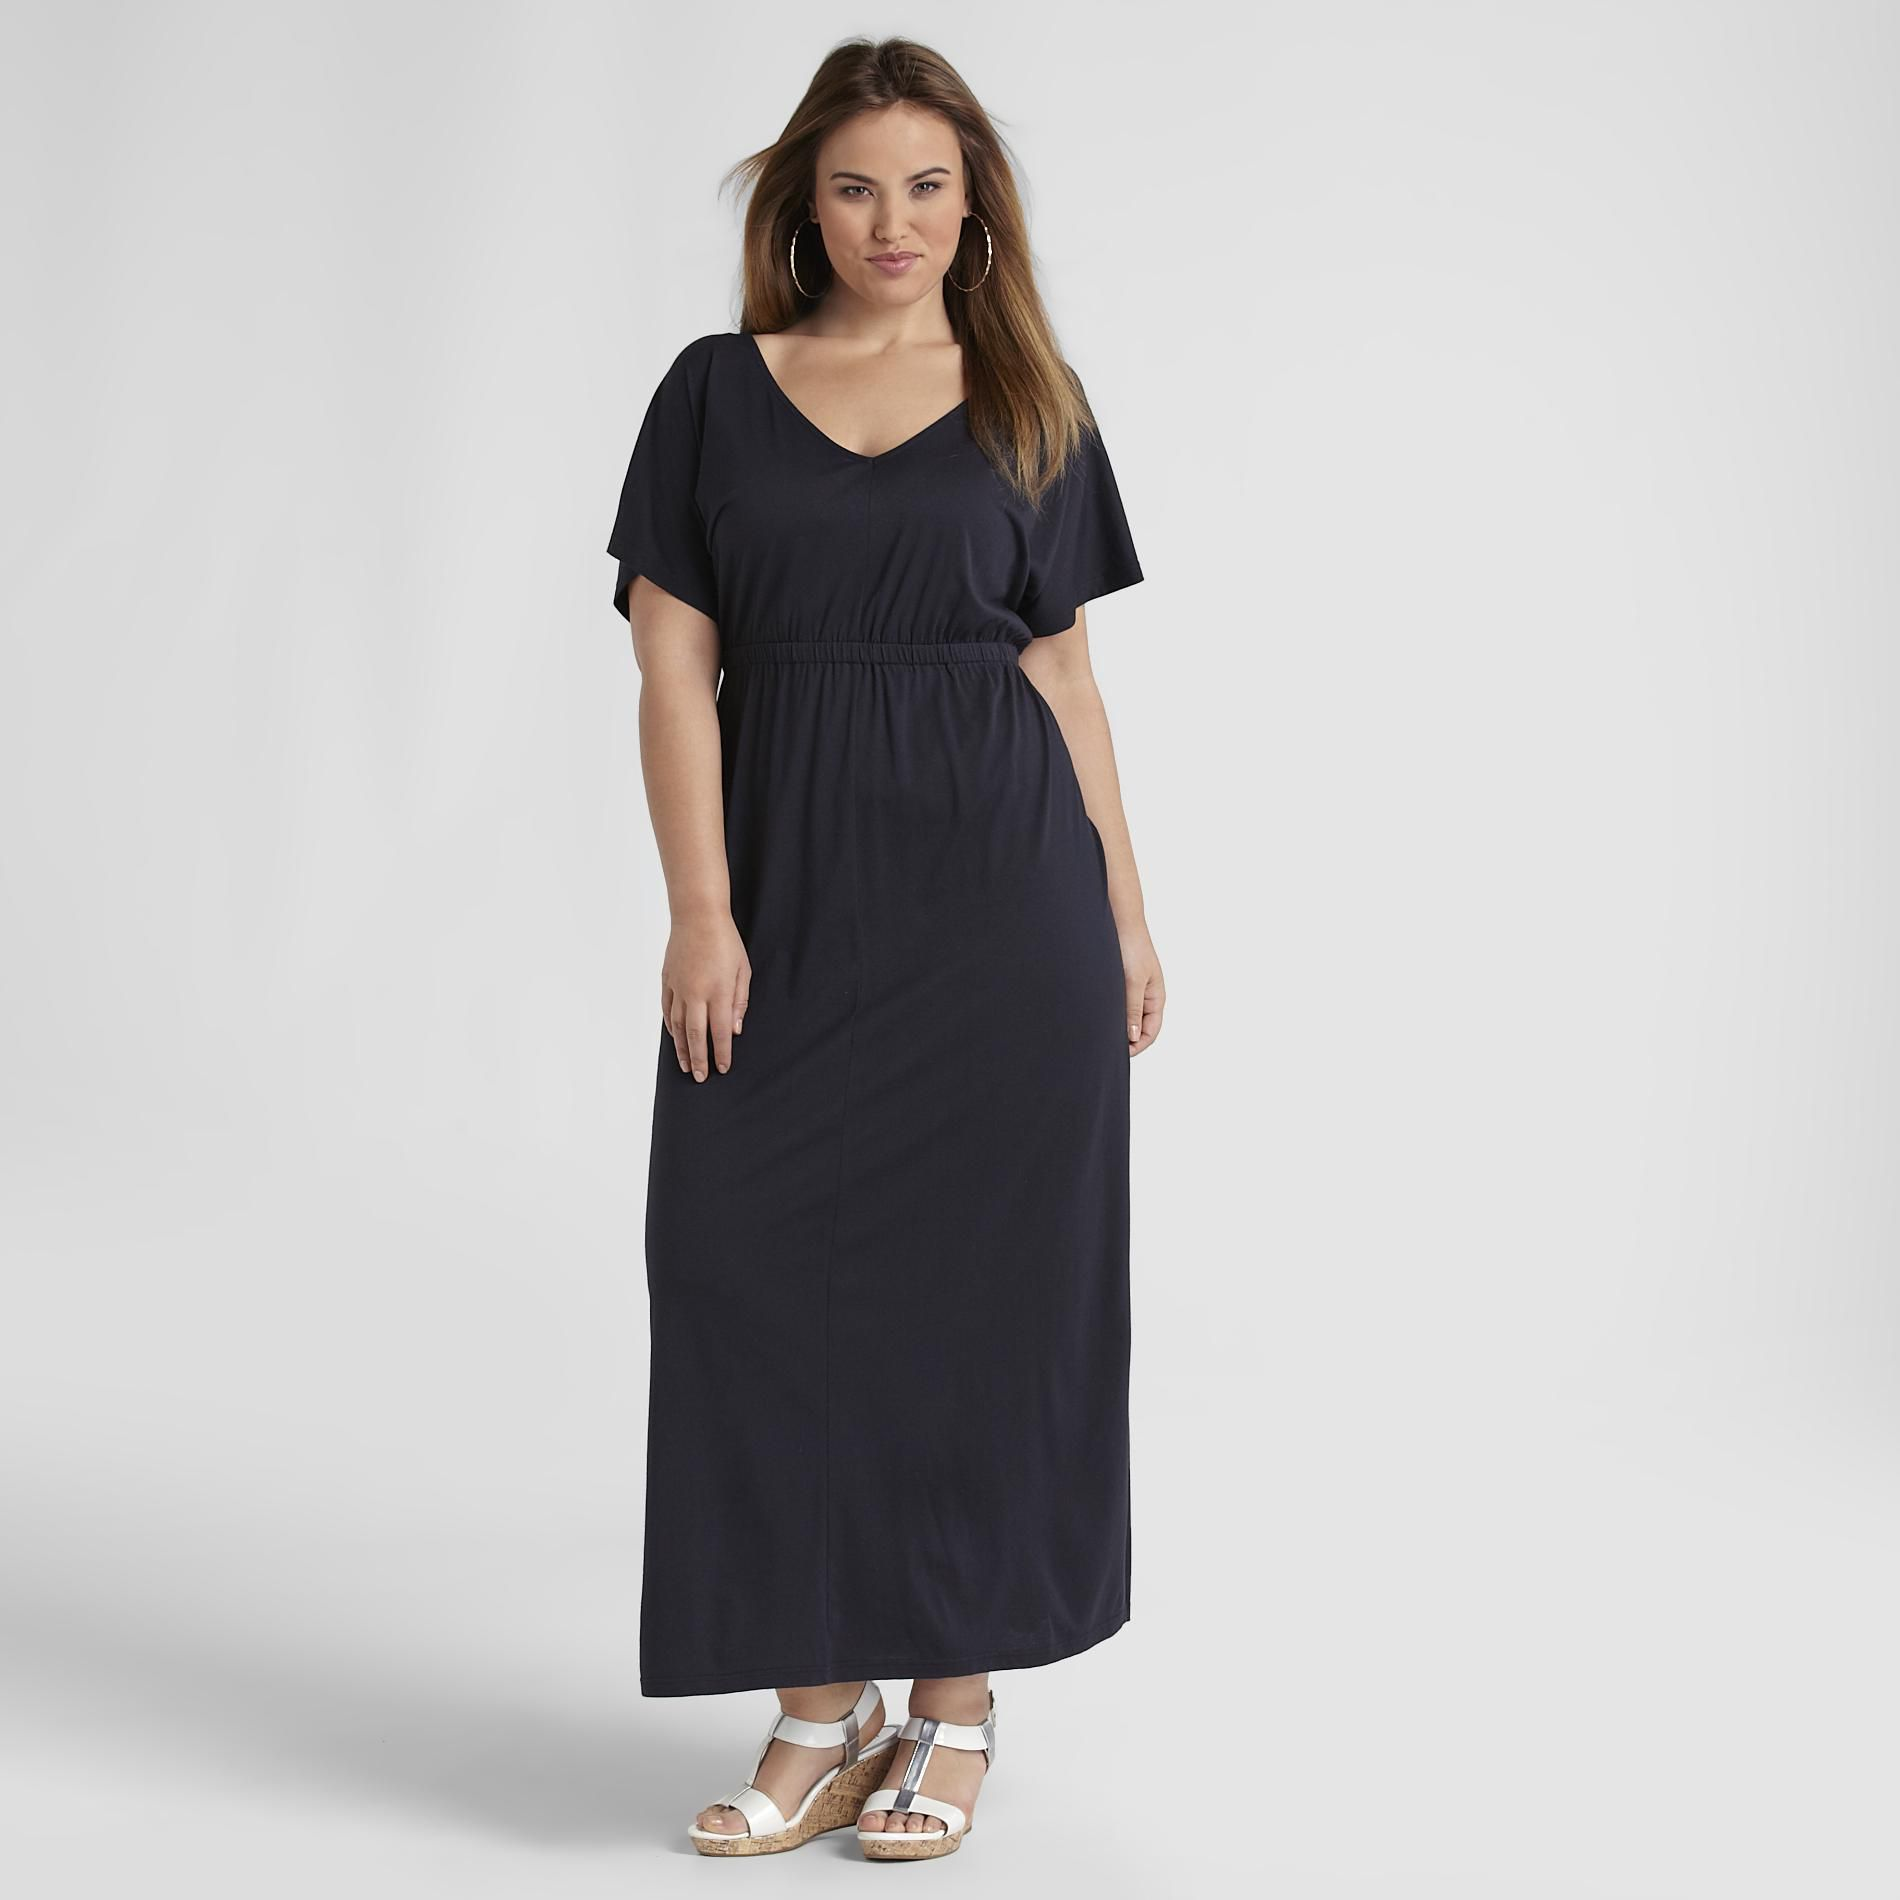 Love Your Style, Love Your Size Women's Plus Kimono Maxi Dress at Kmart.com